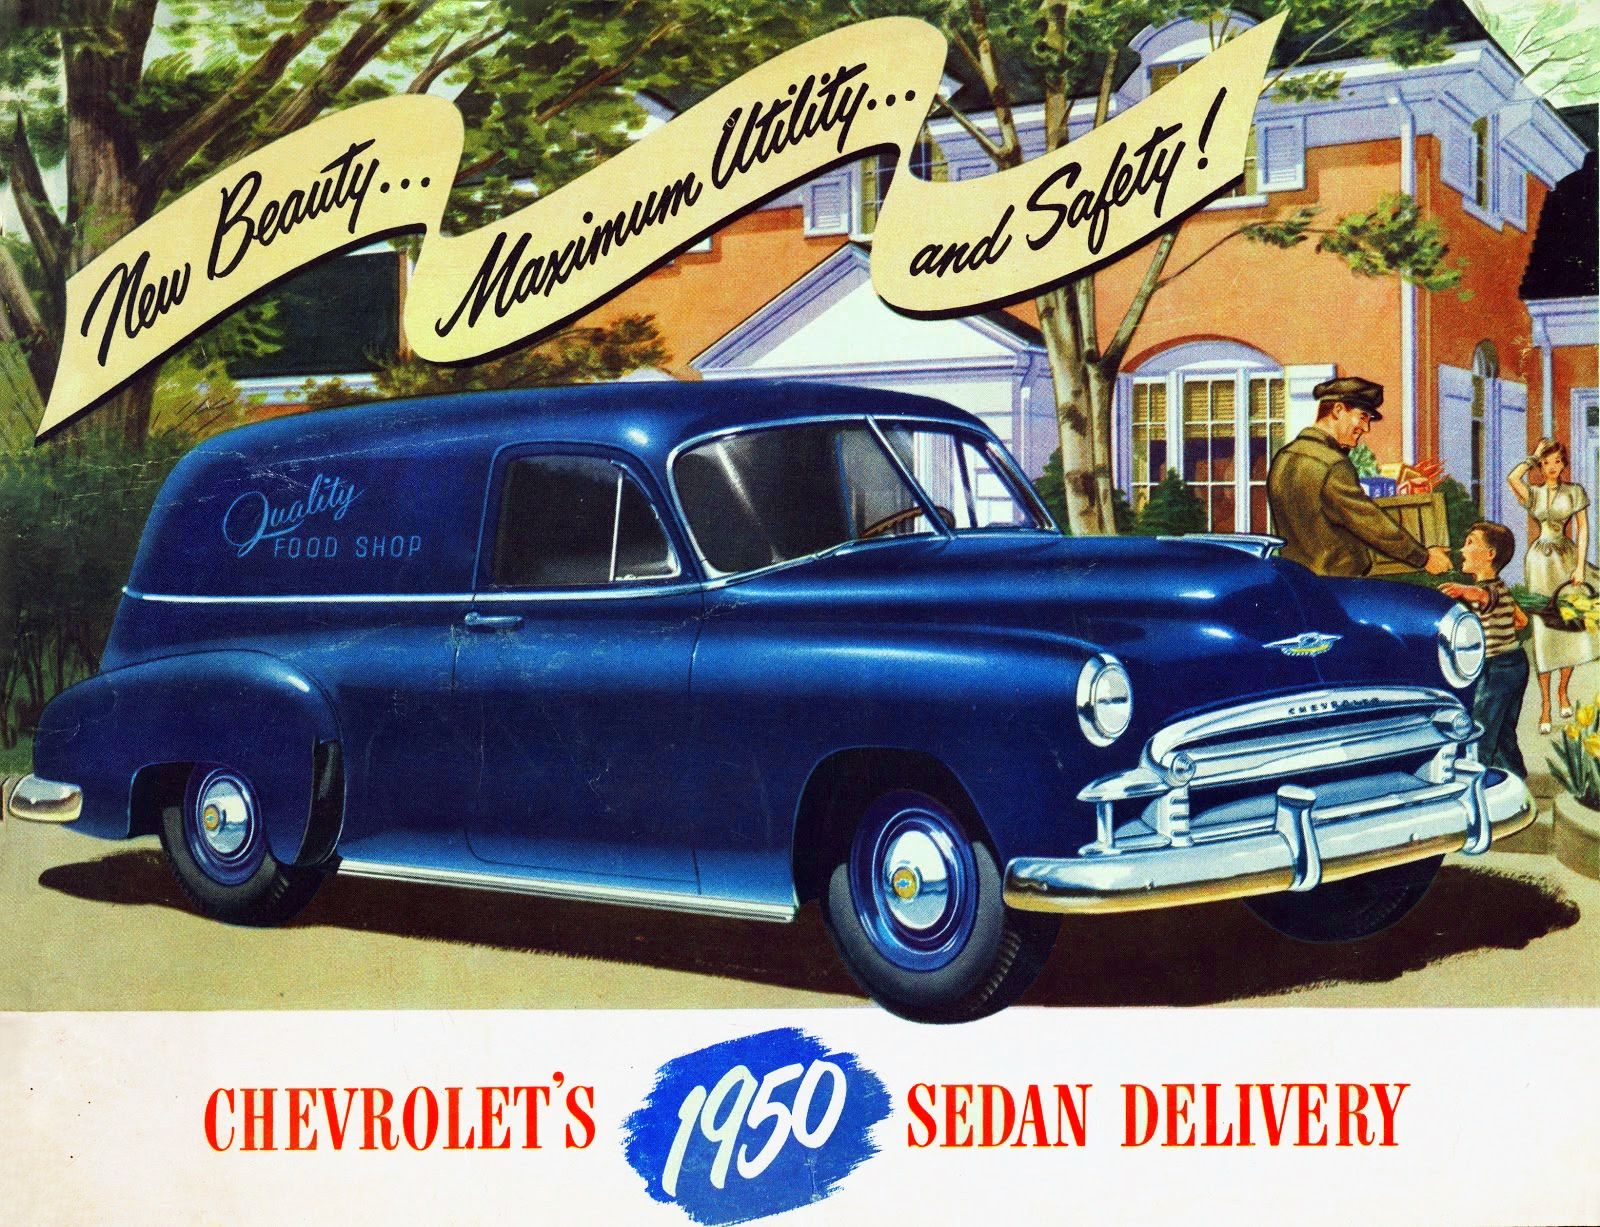 transpress nz: 1950 Chevrolet Sedan Delivery vehicle